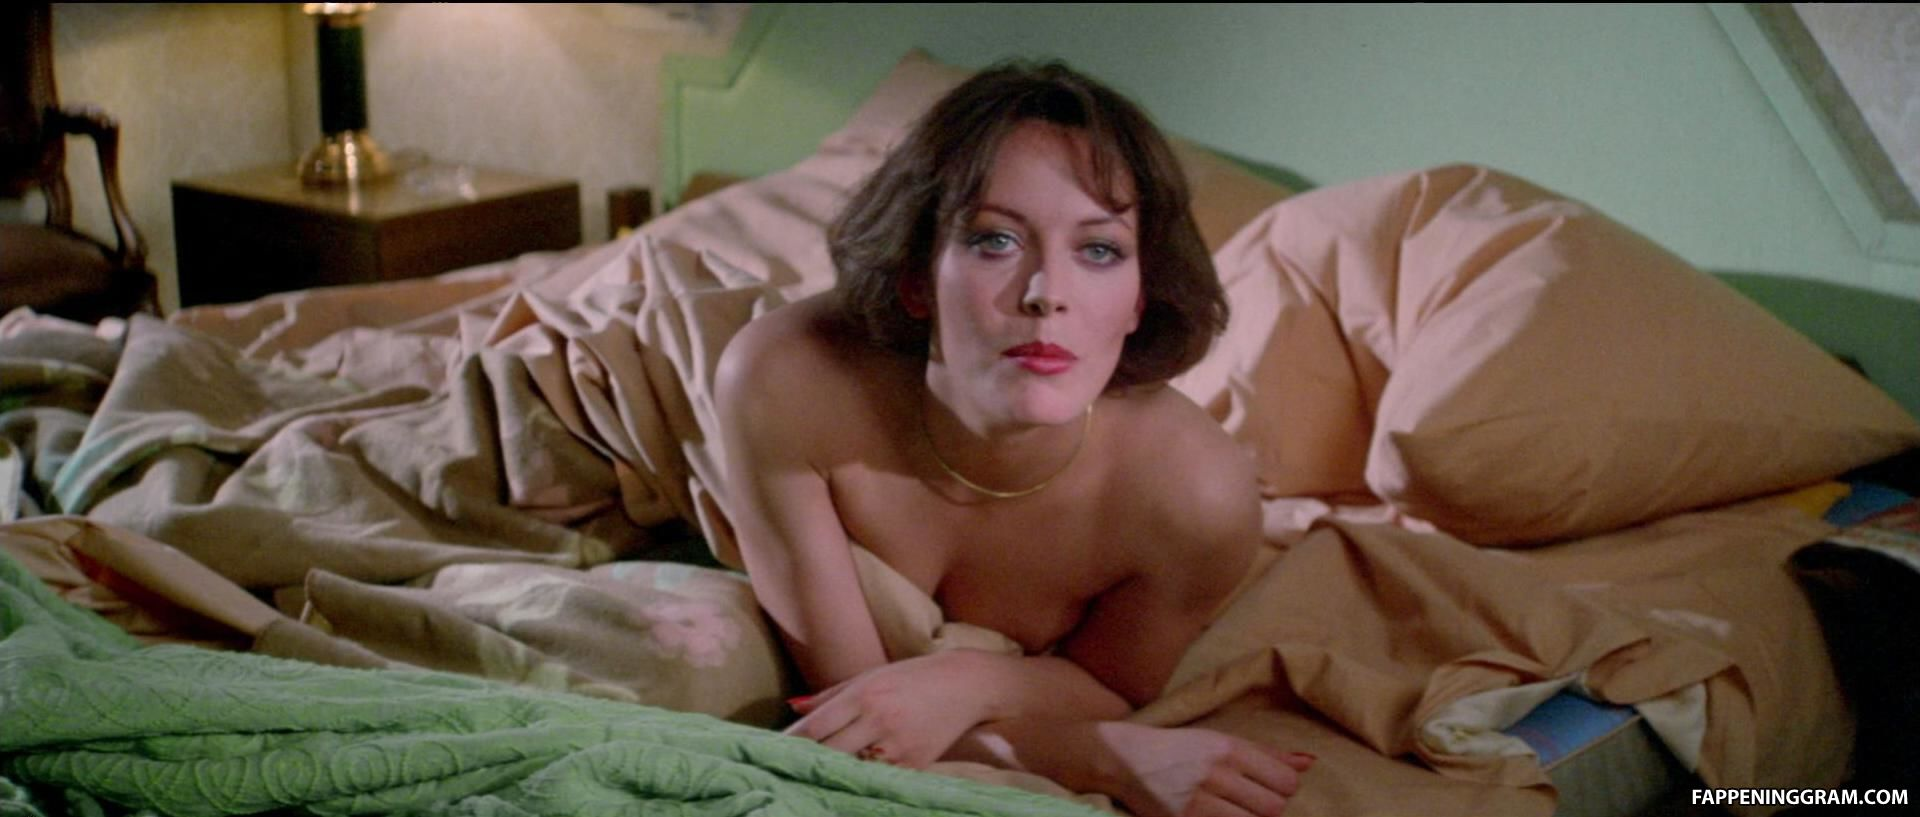 Nude lesley anne down